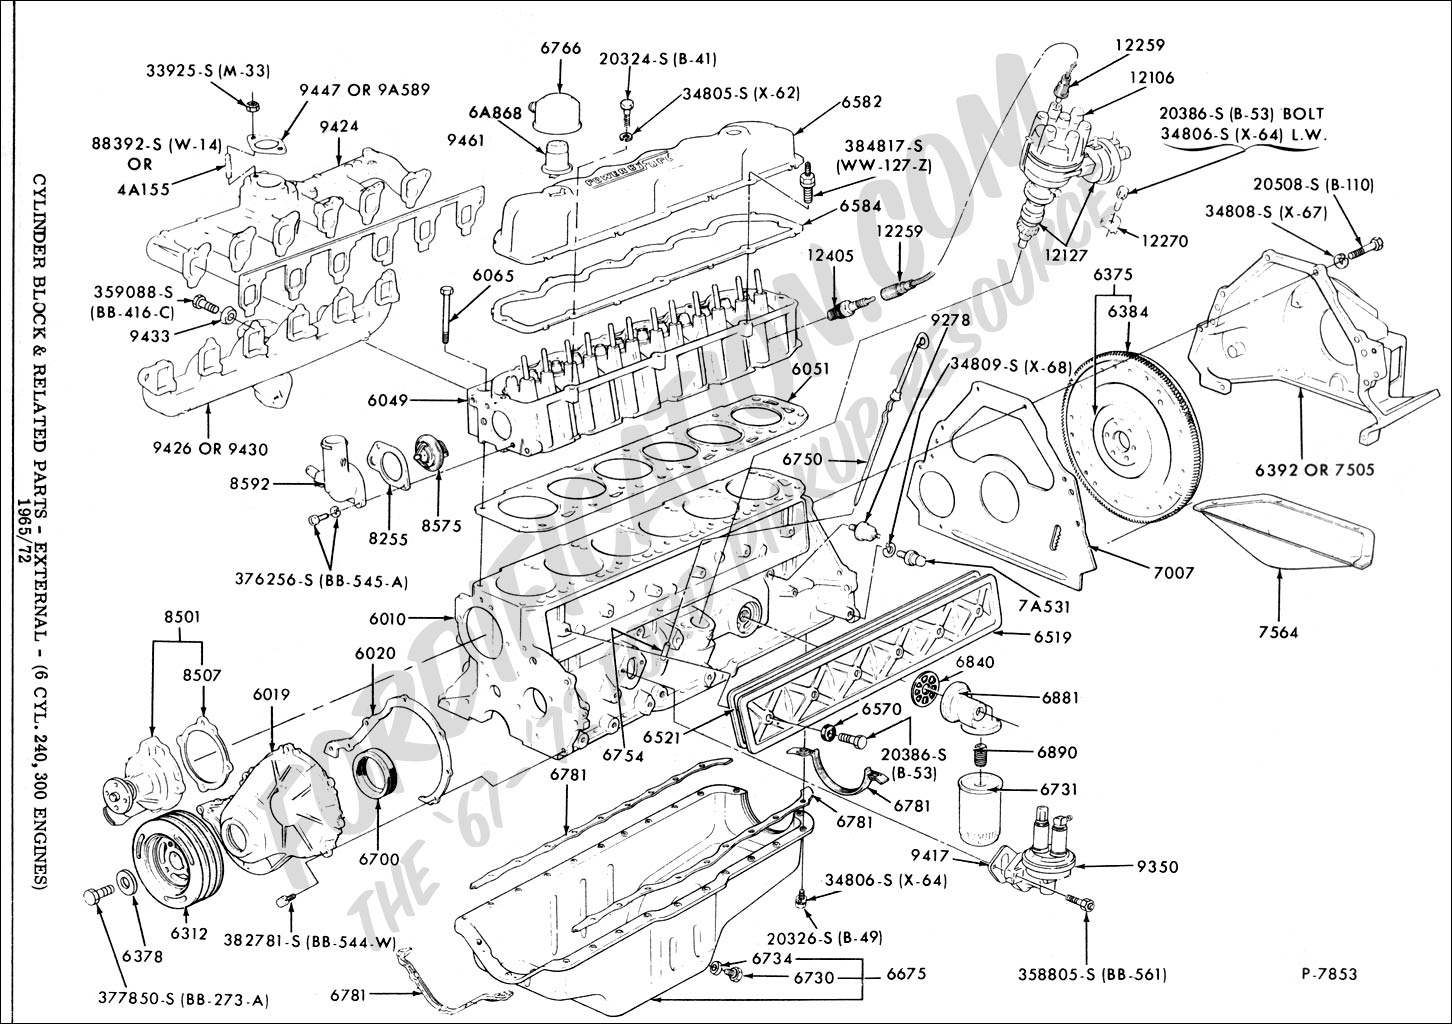 Pics Photos Diagram Engine Breakdown 351m 78 Ford F150 Forum